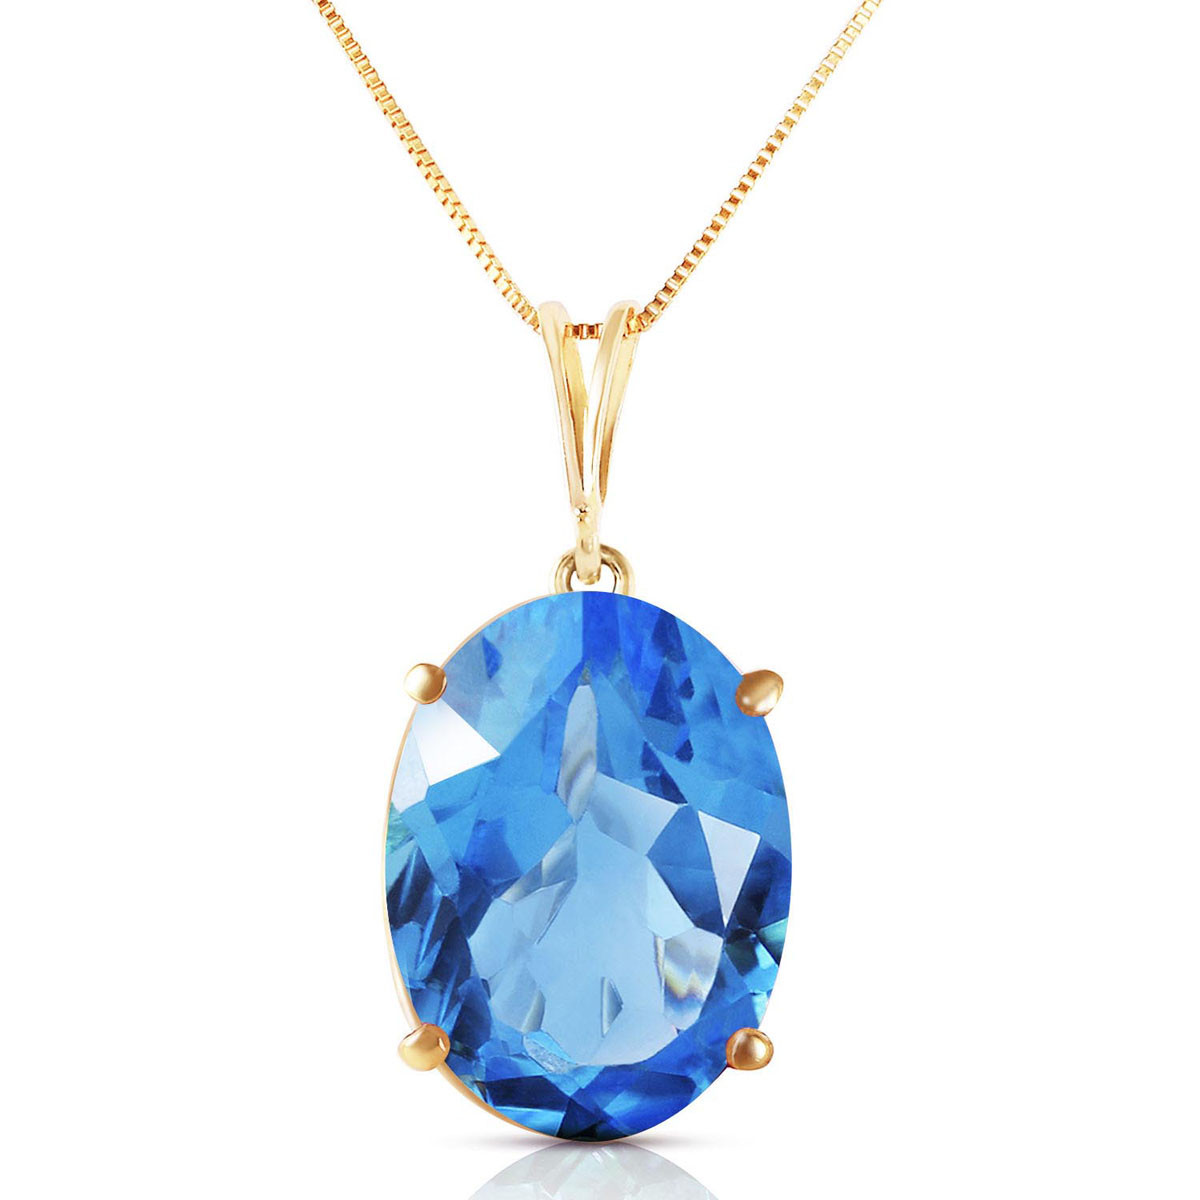 9ct Gold Oval Blue Topaz necklace Pendant no chain Gift Boxed Made in UK